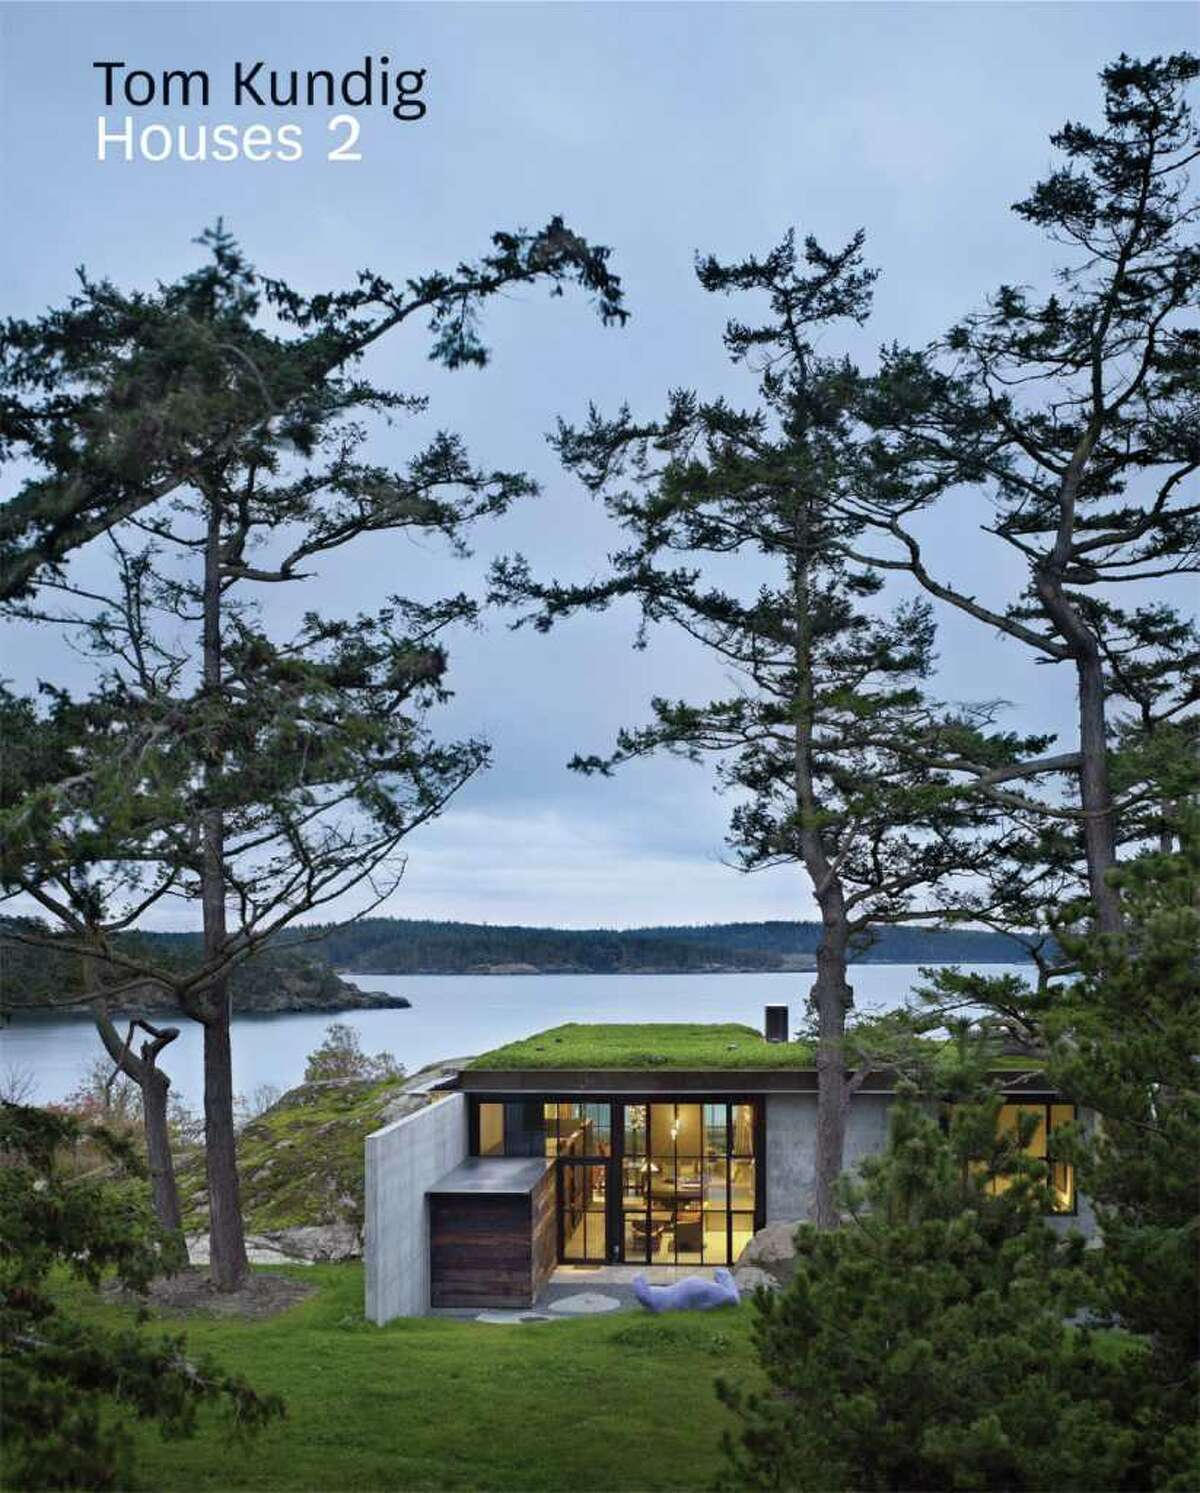 Seattle architect Tom Kundig designs striking contemporary homes, 17 of which are featured in a recently-released photo book.